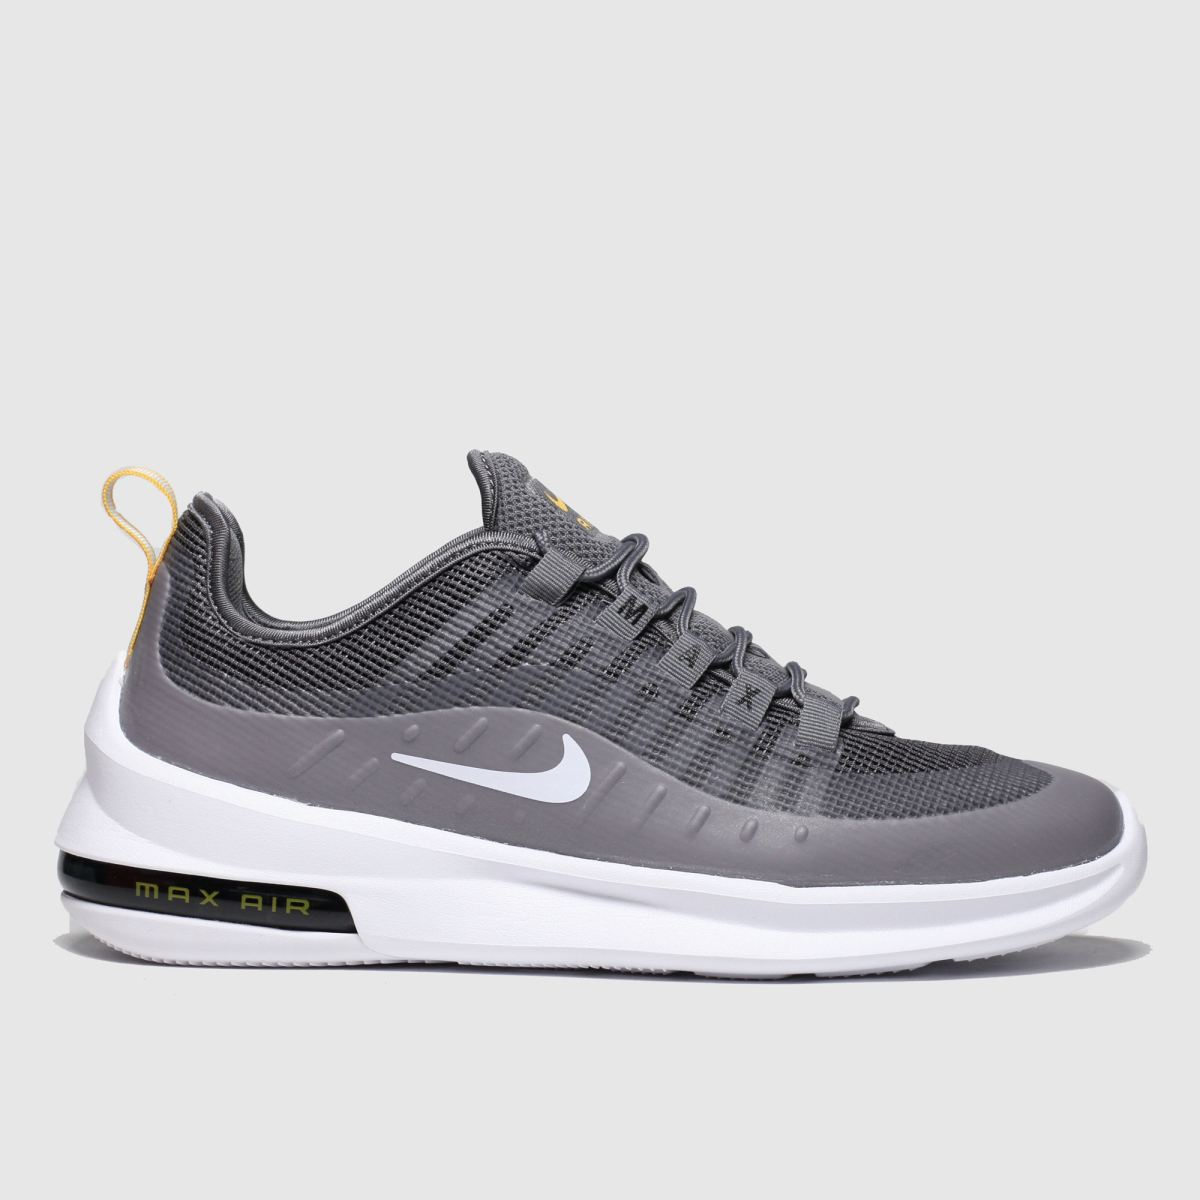 6dfbc8e6b8 Nike - Shop The Latest Collections at London Trend